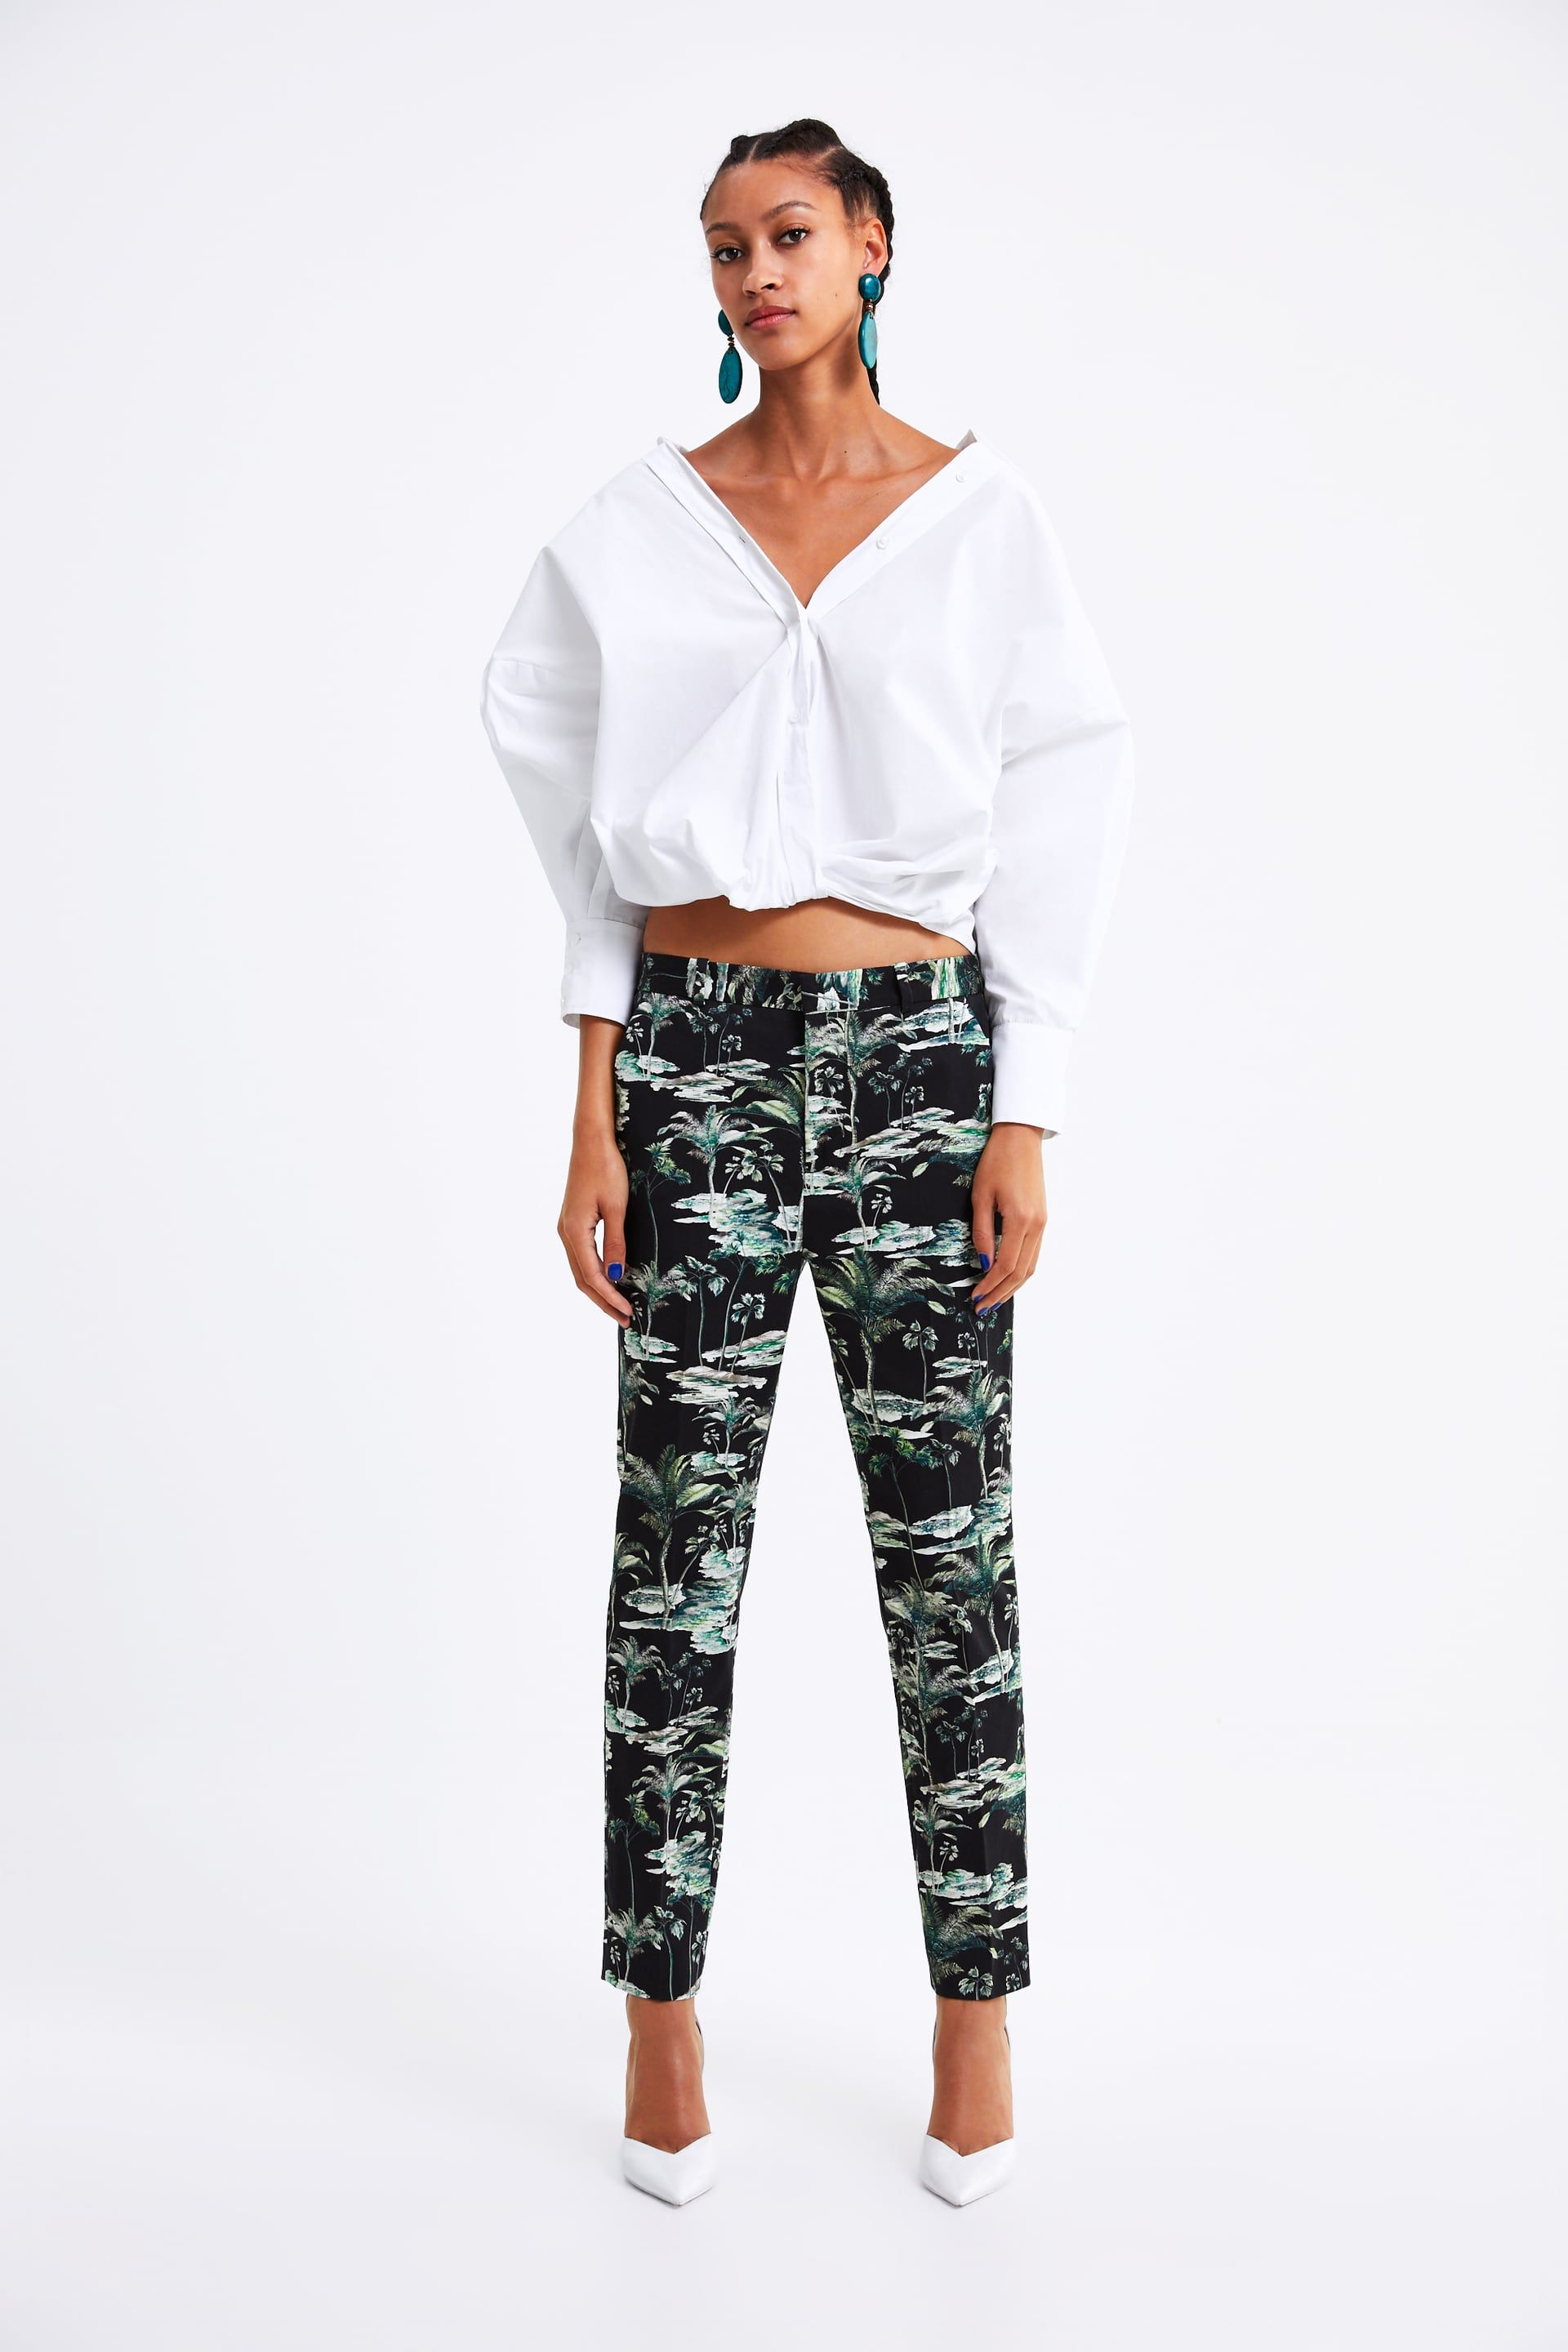 99379e03a5 Palm tree print pants in 2019 | My fashion | Palm tree print ...